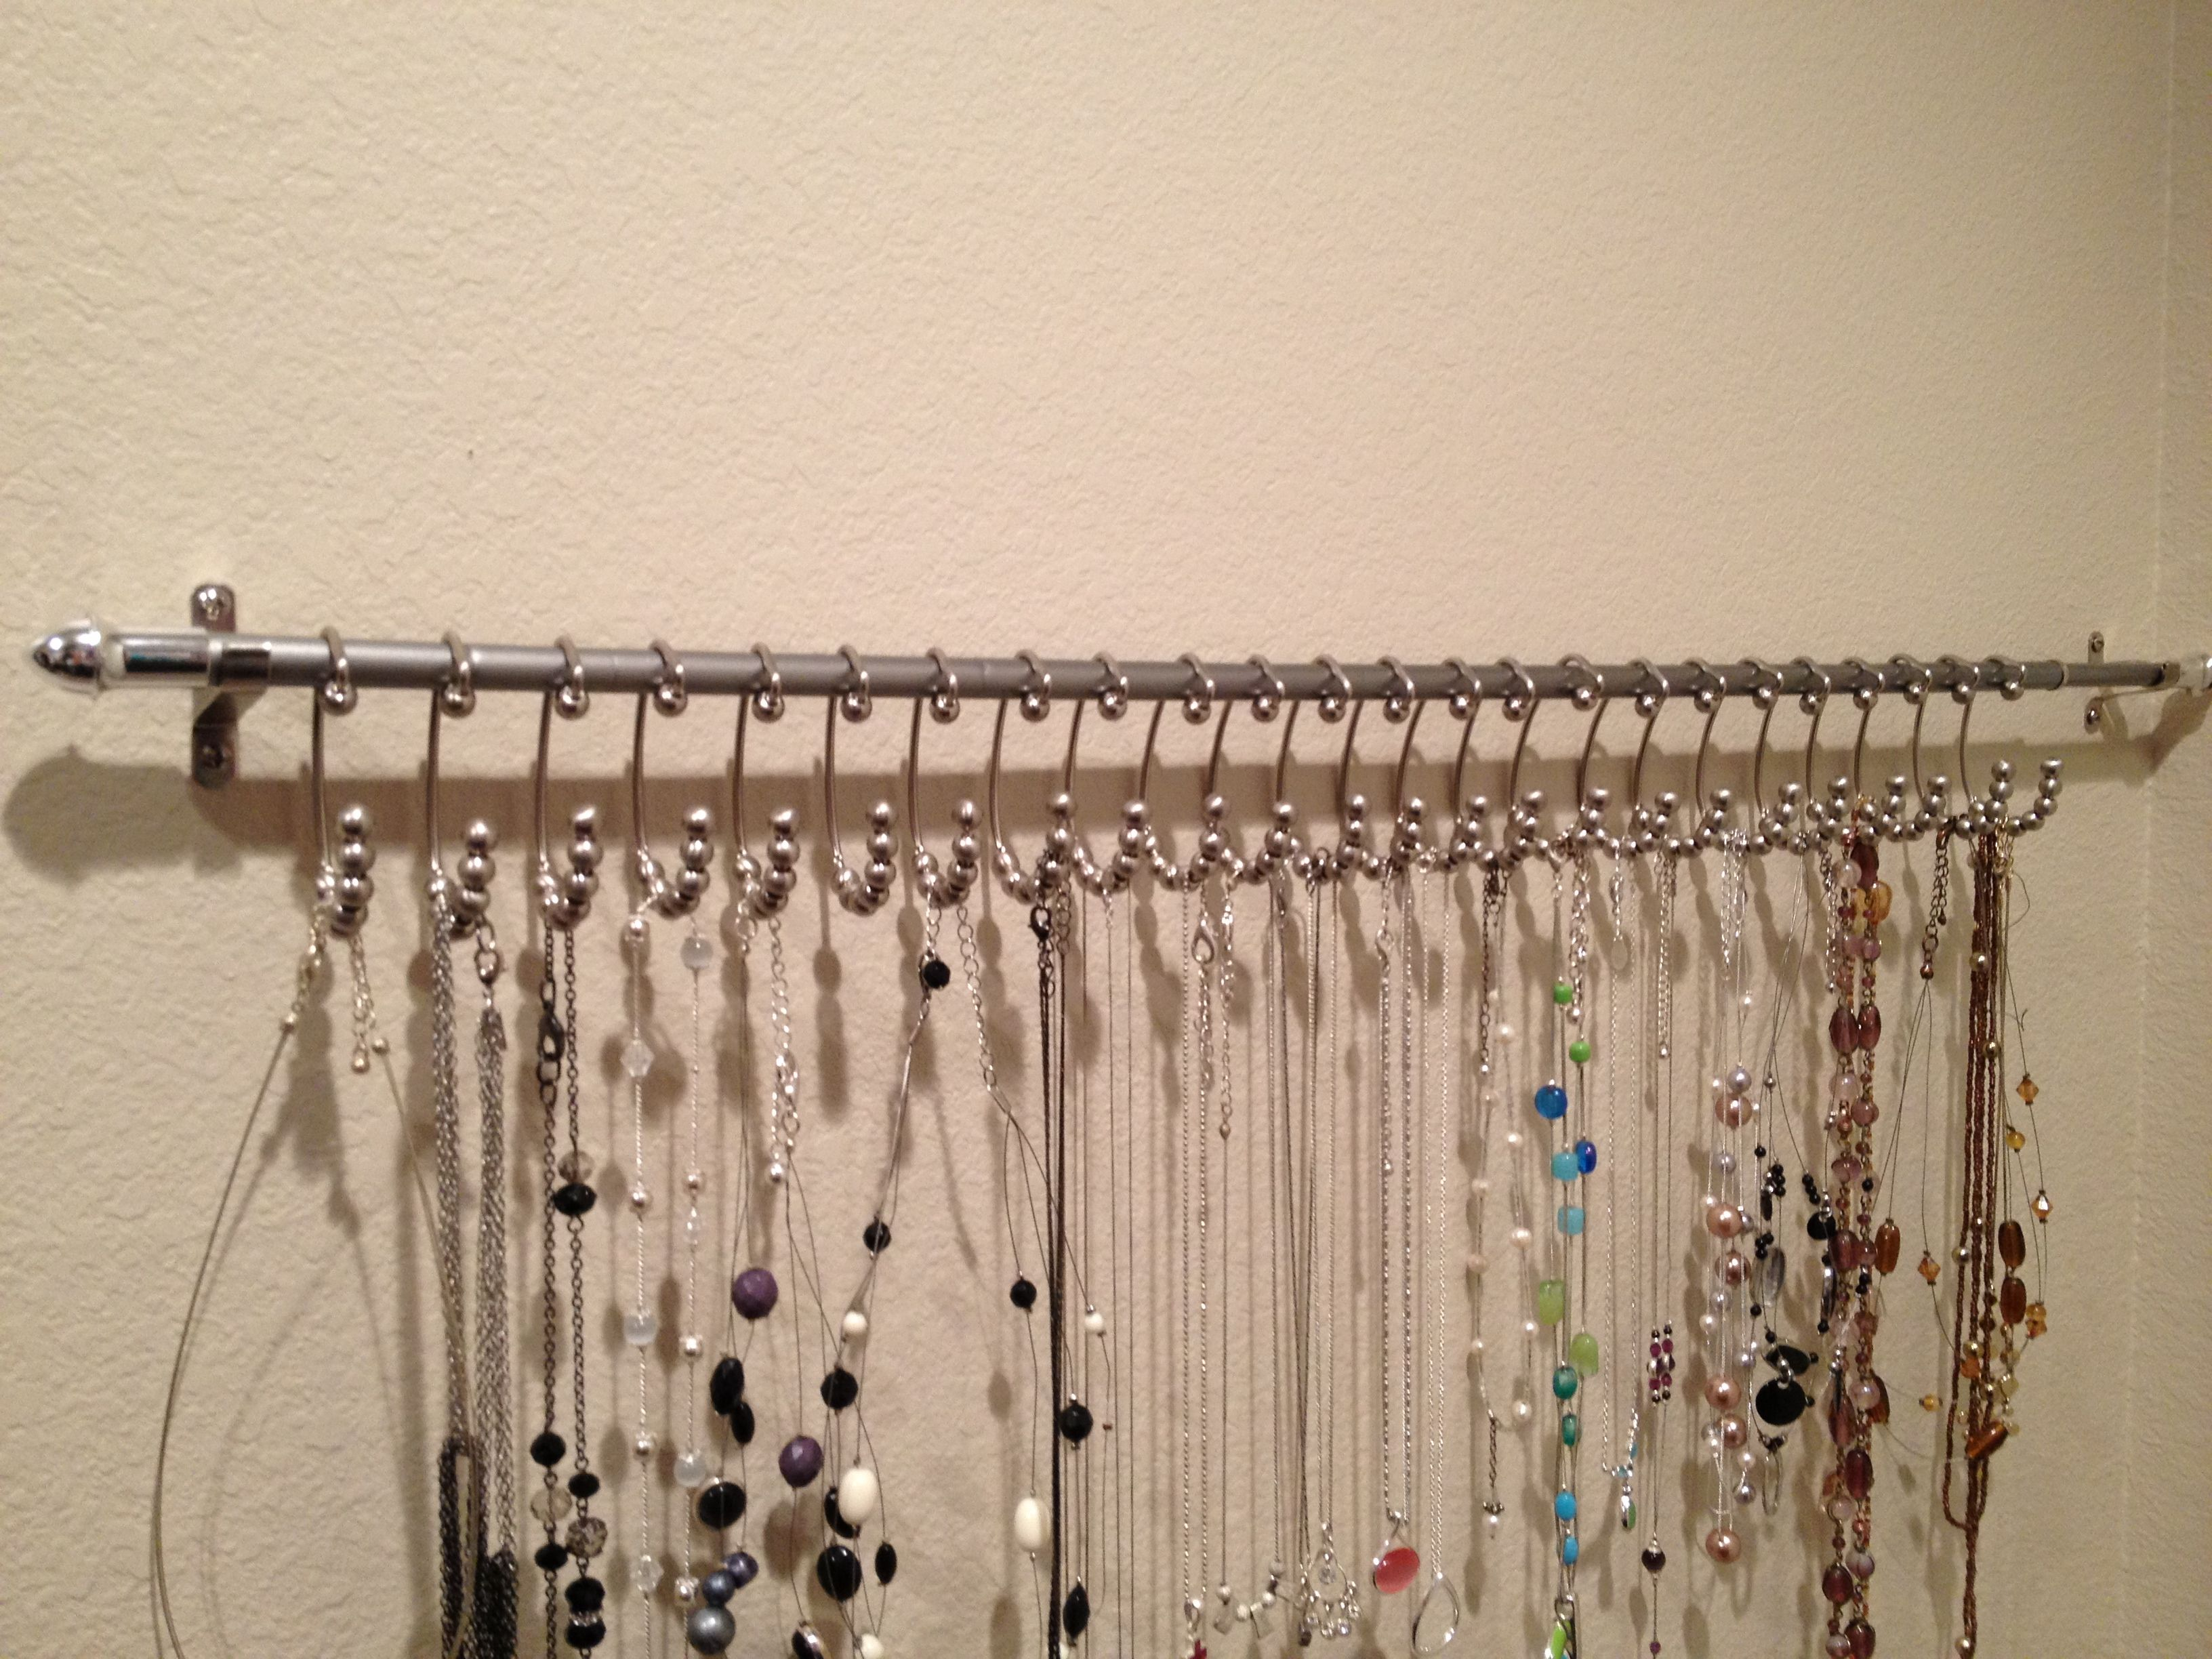 Necklace Hanger Curtain Rod And Shower Hooks From Menards